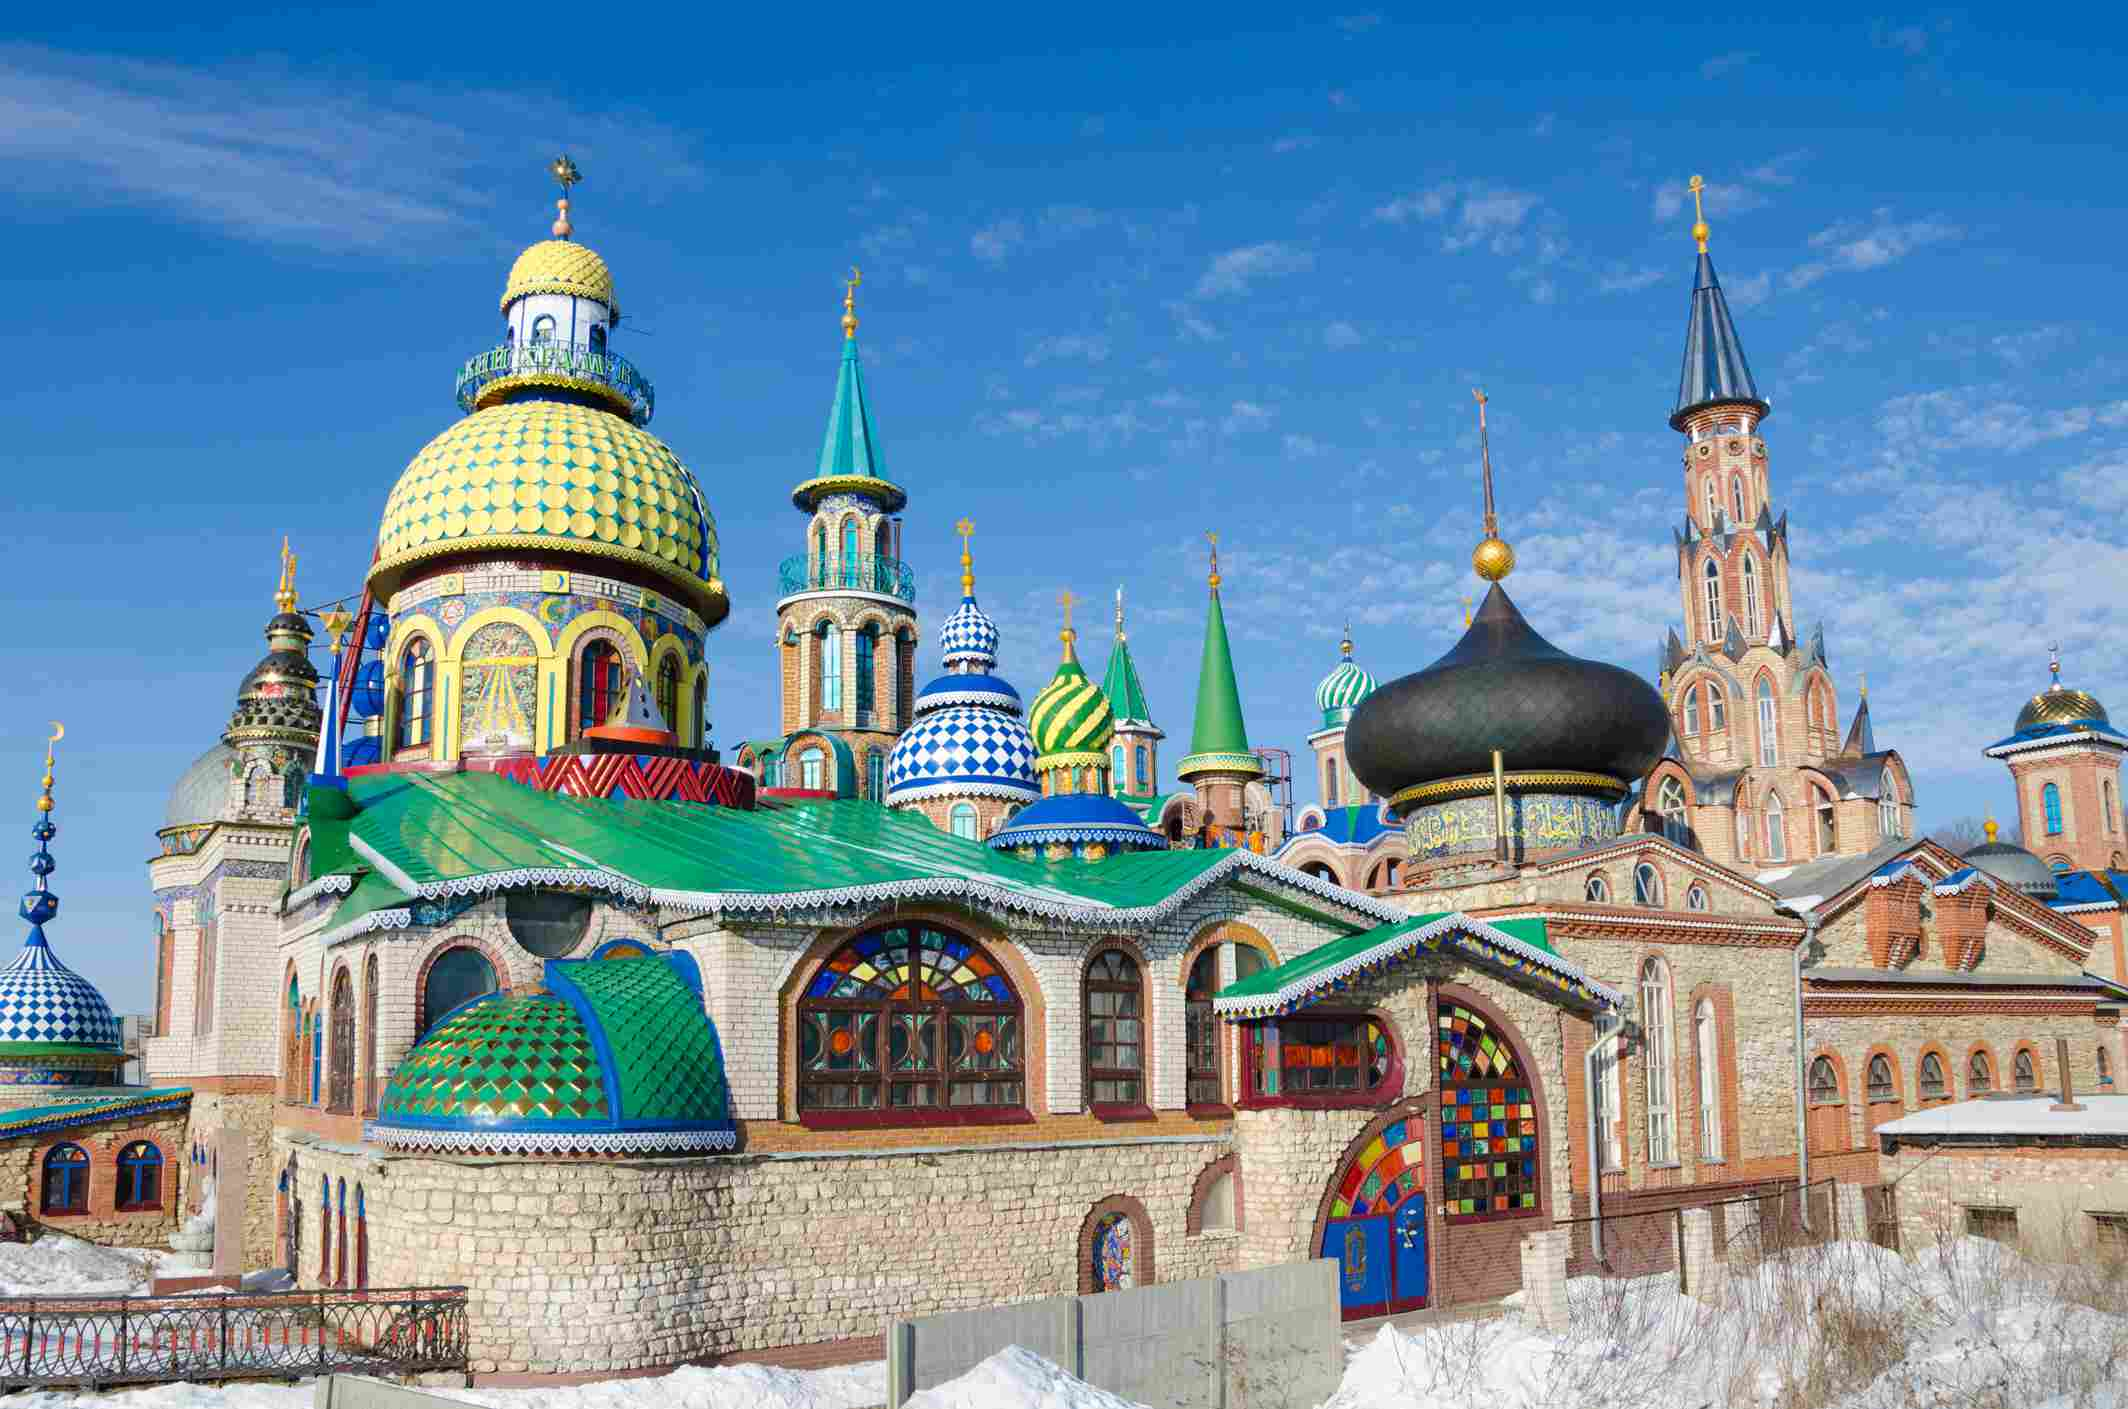 The Temple of All Religions in Kazan, Russia